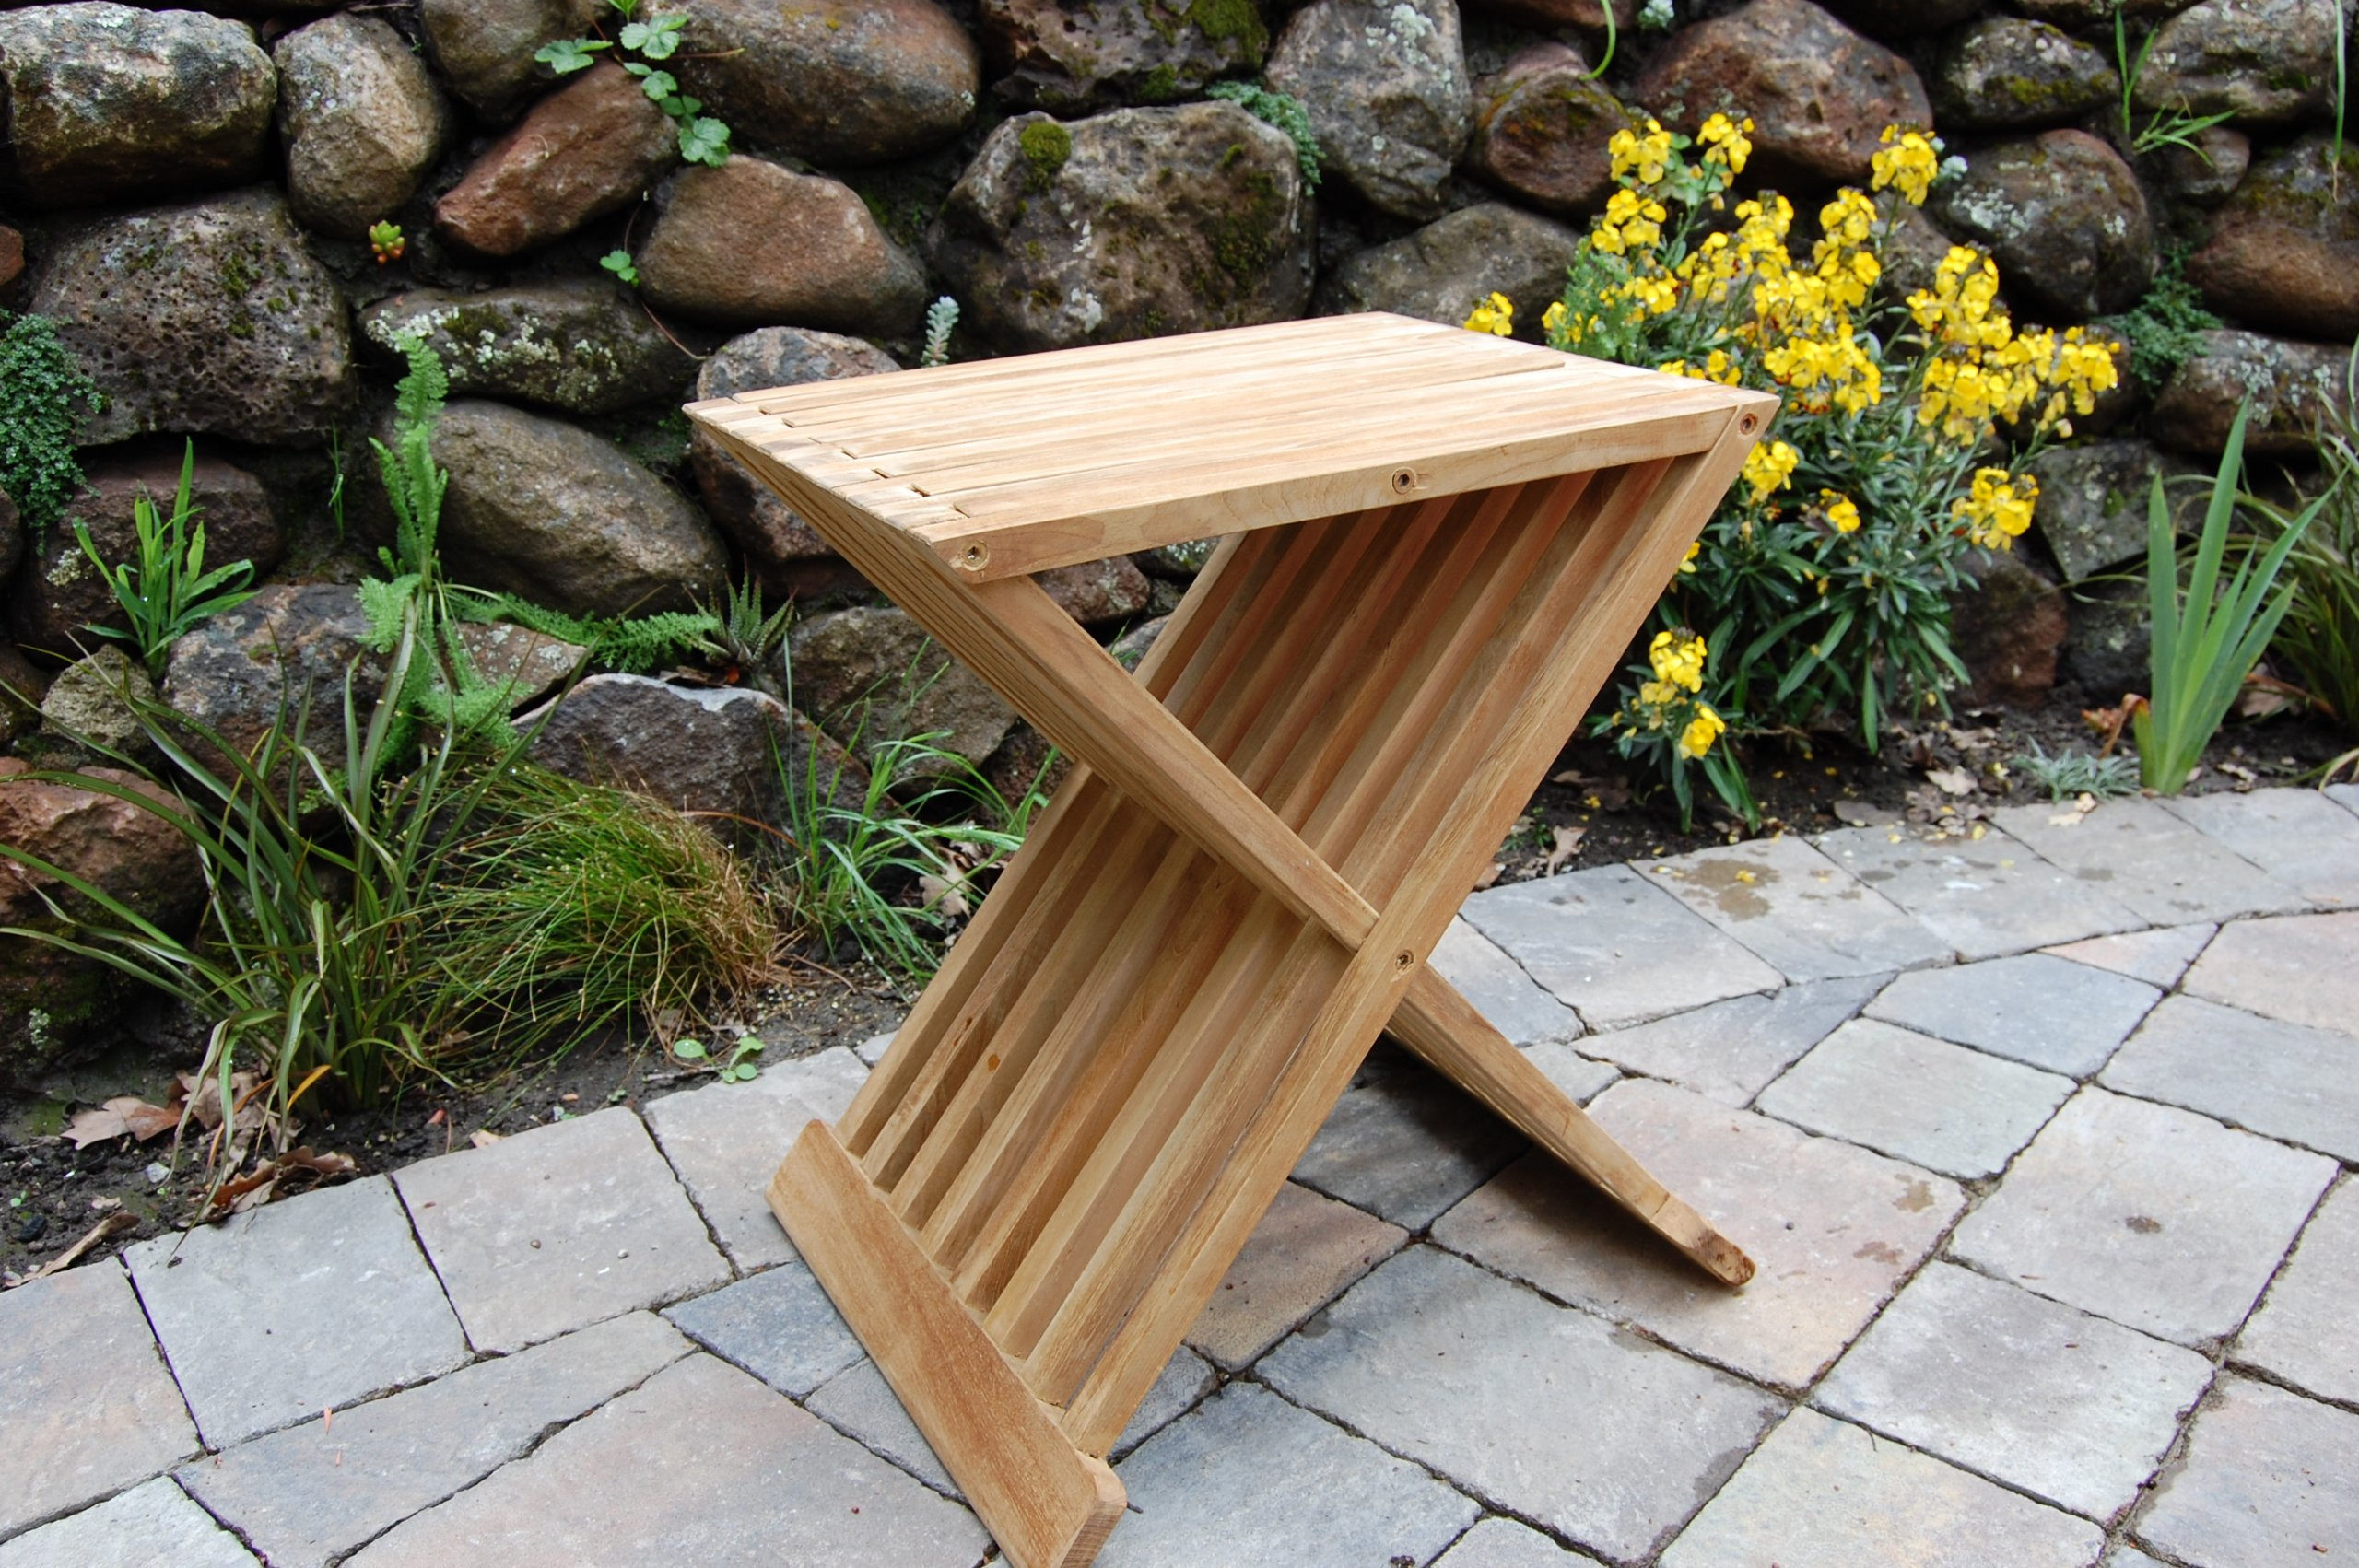 Teak Wood Folding Shower Seat, Bench, Stool - Bath, Sauna Seating